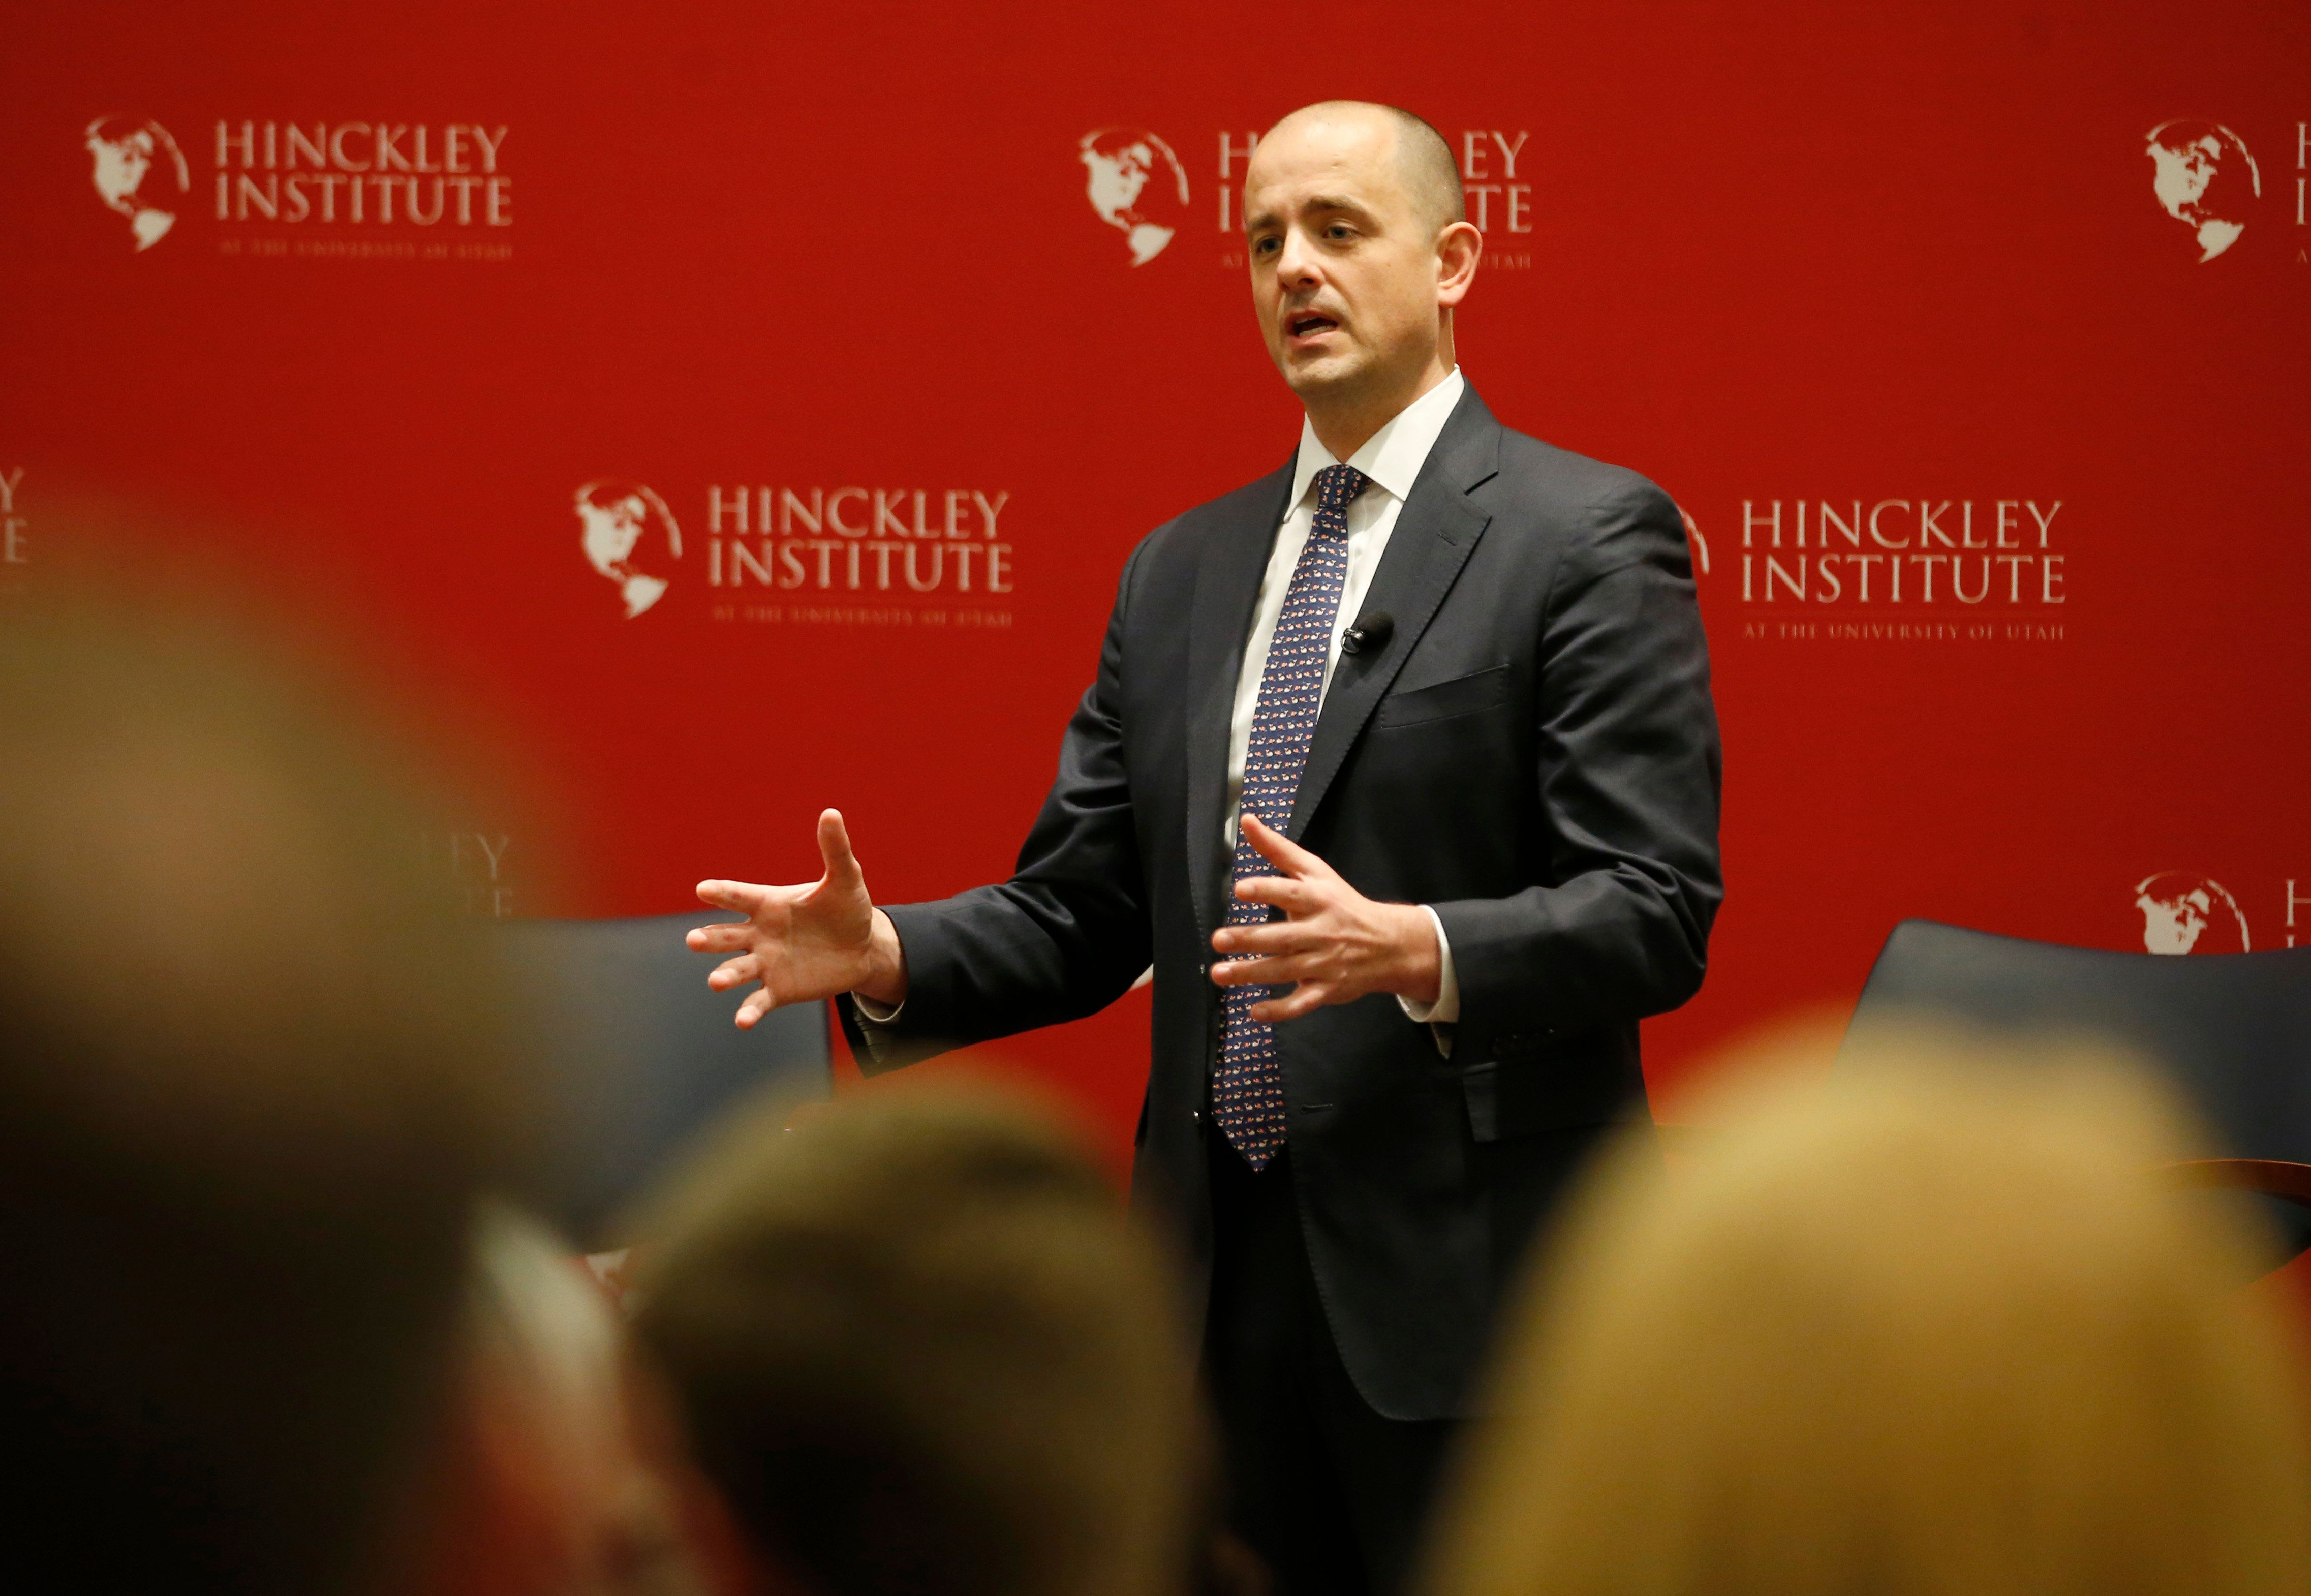 US Independent presidential candidate Evan McMullin talks to students at the University of Utah's Hinckley institute on November 2, 2016 in Salt Lake City, Utah  Polls show McMullin in a tie with US Republican presidential candidate Donald Trump in Utah. / AFP / GEORGE FREY        (Photo credit should read GEORGE FREY/AFP/Getty Images)